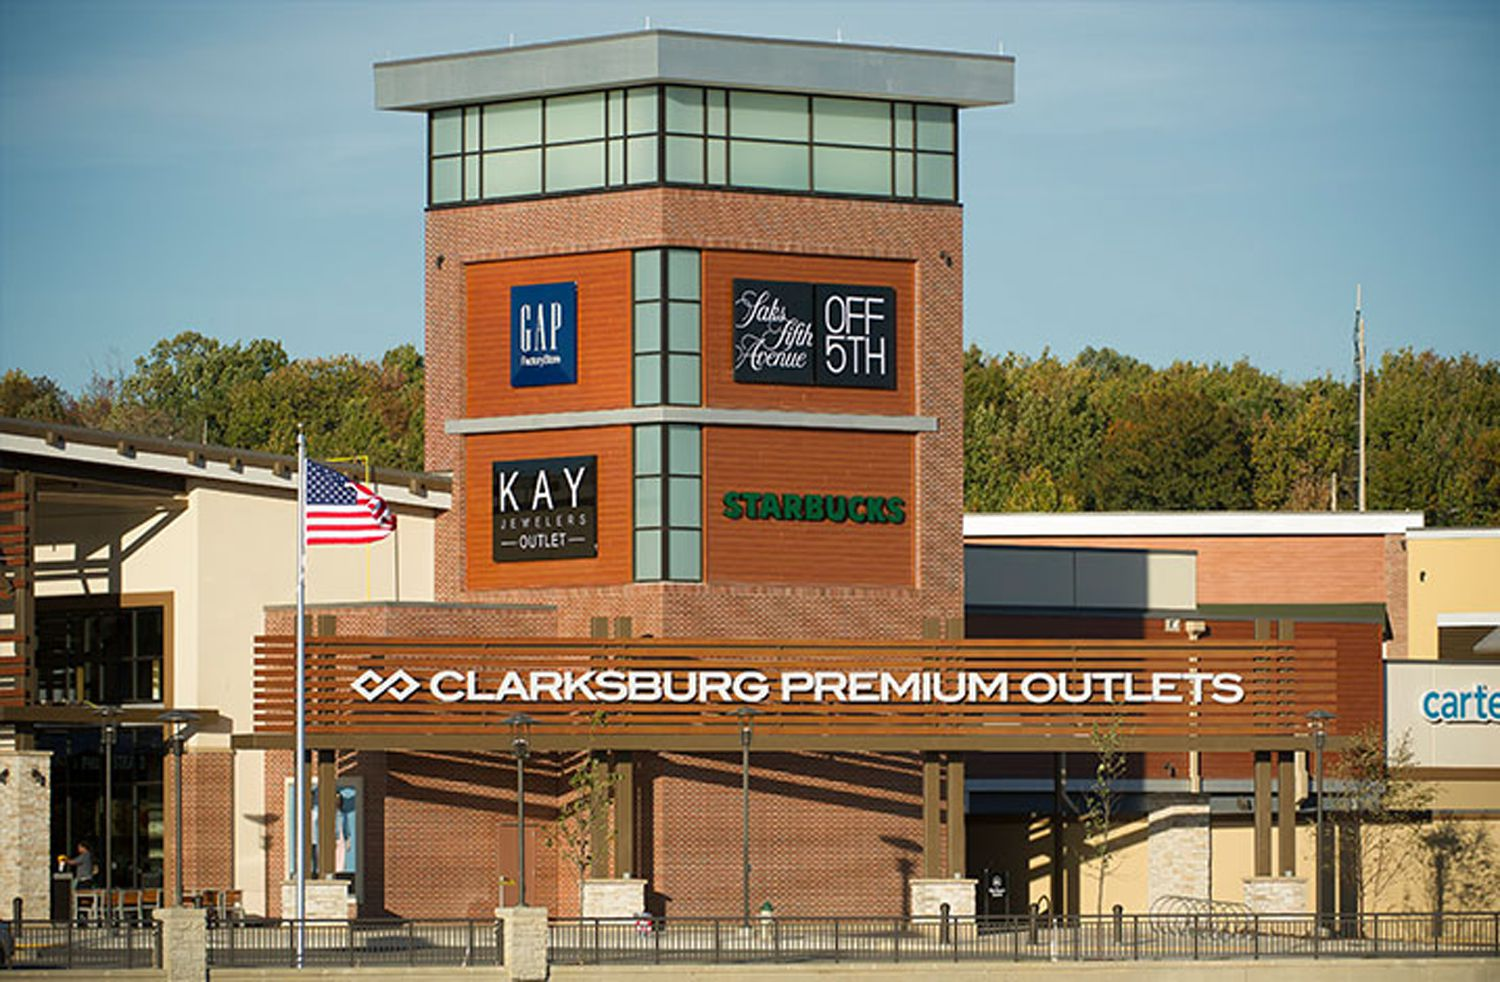 Locations of Premium Outlet Centers Across the US on charlotte ikea map, charlotte outlet mall map, camarillo outlets map, san marcos outlet mall map, steele creek map,